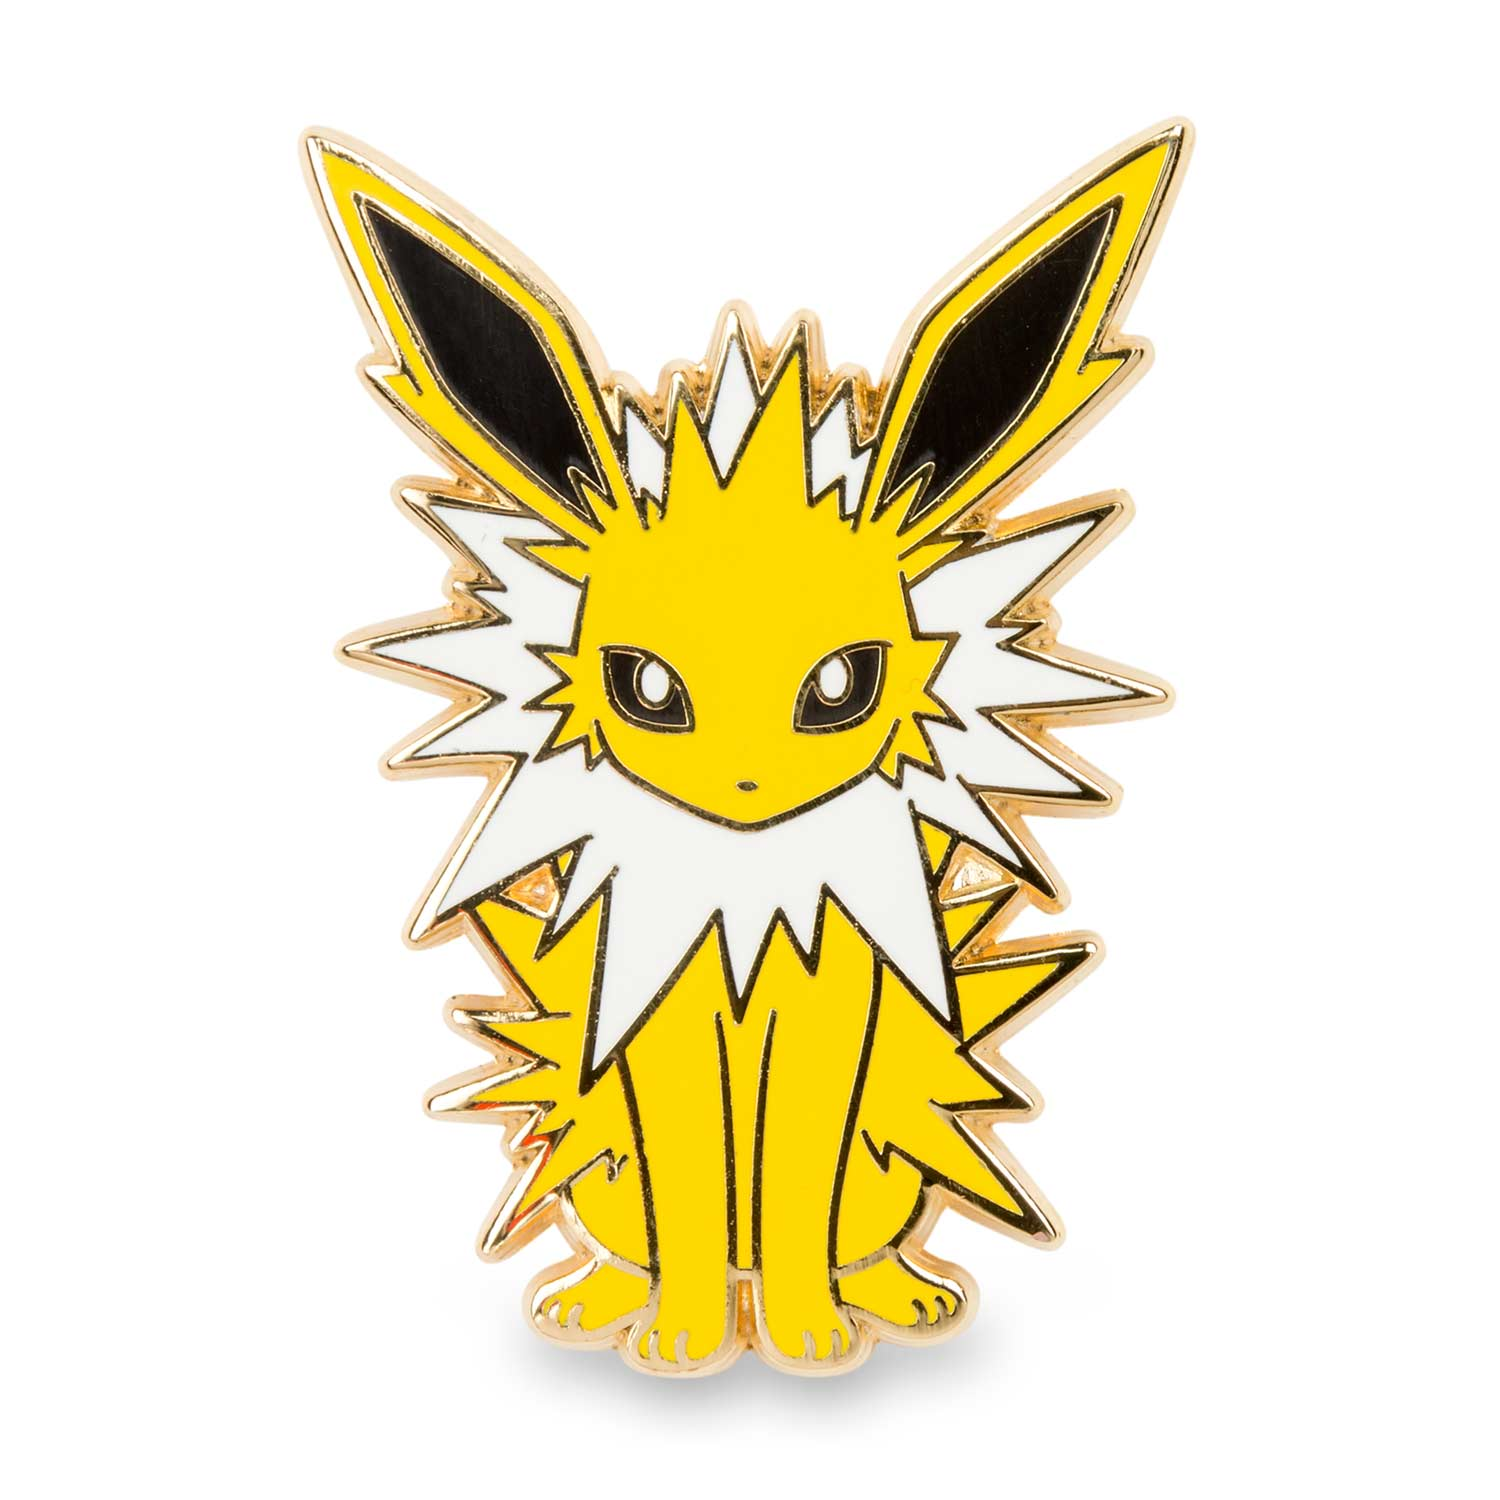 Jolteon And Flareon Pok 233 Mon Pins Pin Collection Pok 233 Mon Center Original